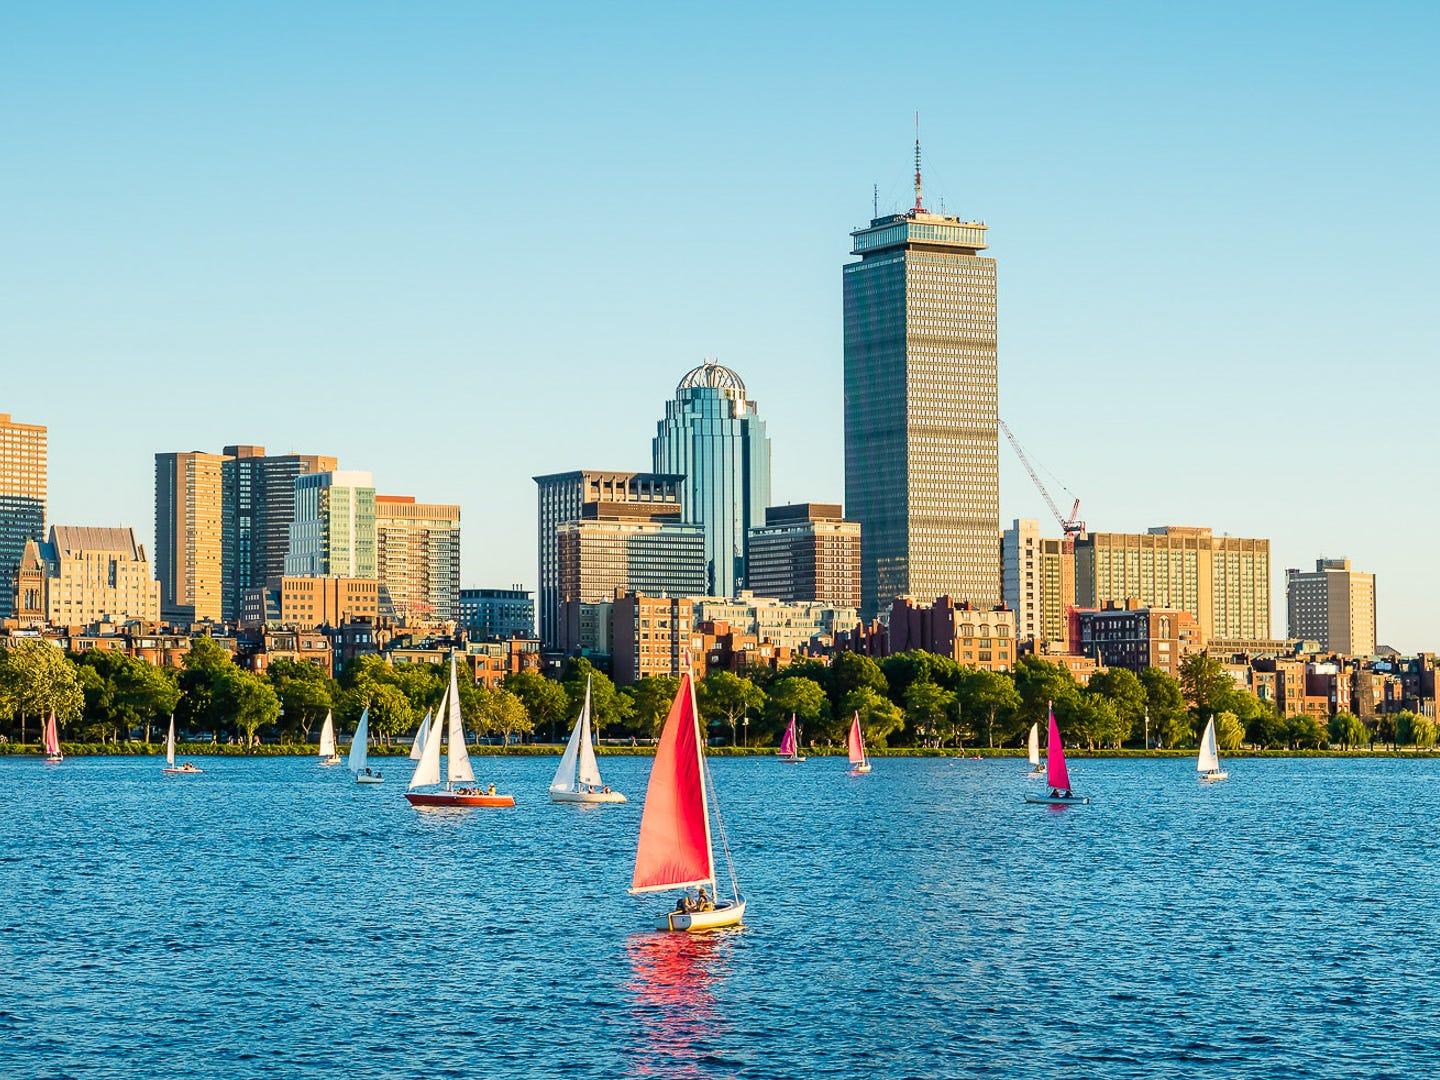 No. 9: Boston. Thanksgiving trip cost: $1,021. Christmas trip cost: $929. Boston gets cold in the winter, but it's a good time to visit this city if you want to save money. As the temperature drops, so do prices — the average hotel cost is lower during Christmas than around Thanksgiving, and flight costs are lower as well. The average round-trip flight cost from Atlanta drops from $223 during Thanksgiving to $170 during Christmas.